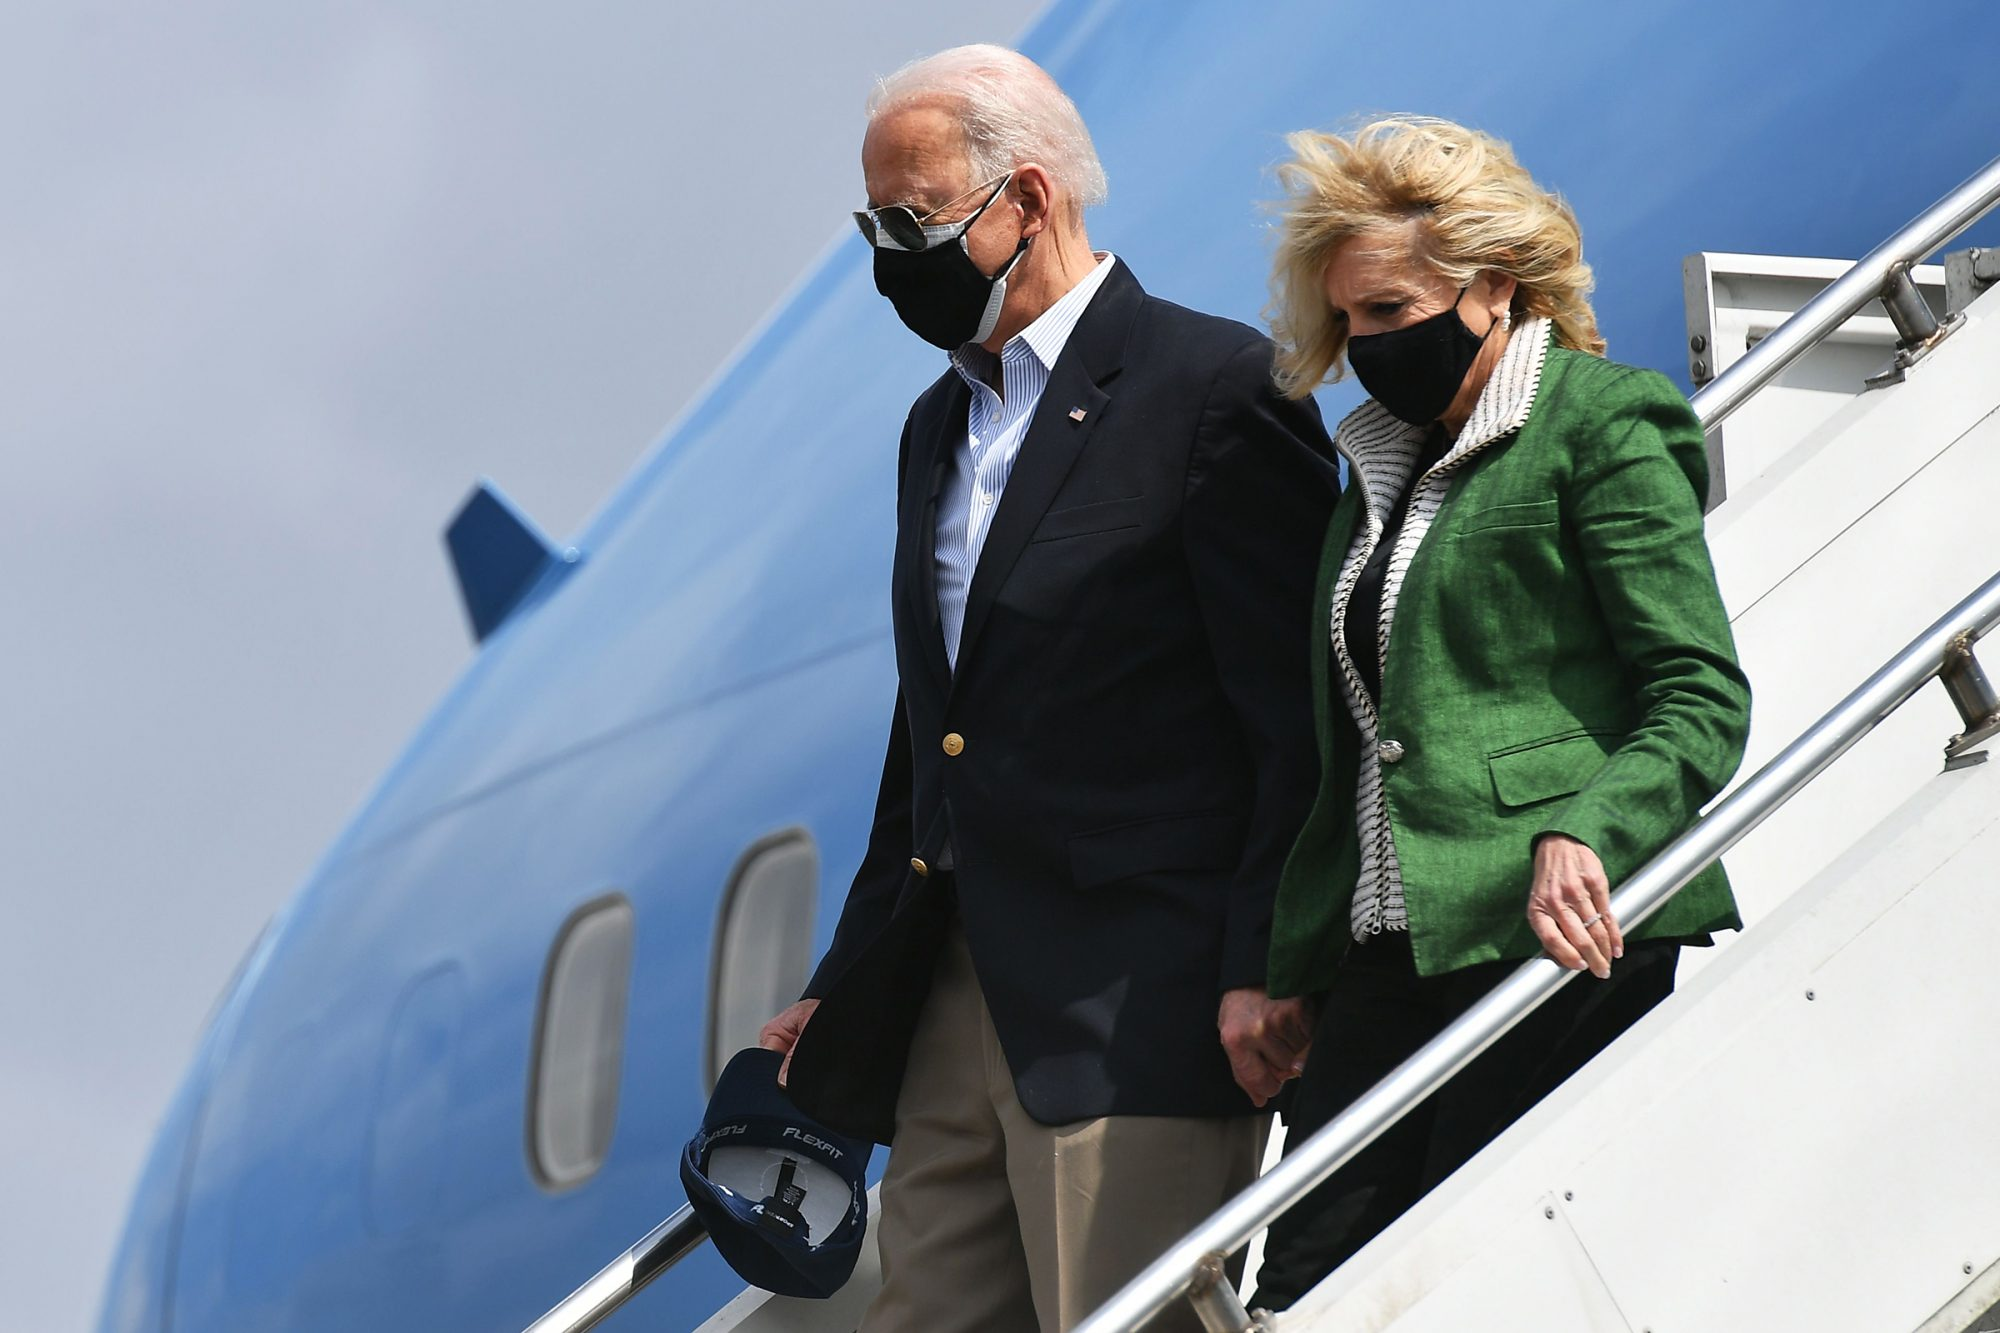 President Joe Biden and First Lady Jill Biden step off Air Force One upon arrival at Ellington Field Joint Reserve Base in Houston, Texas on February 26, 2021